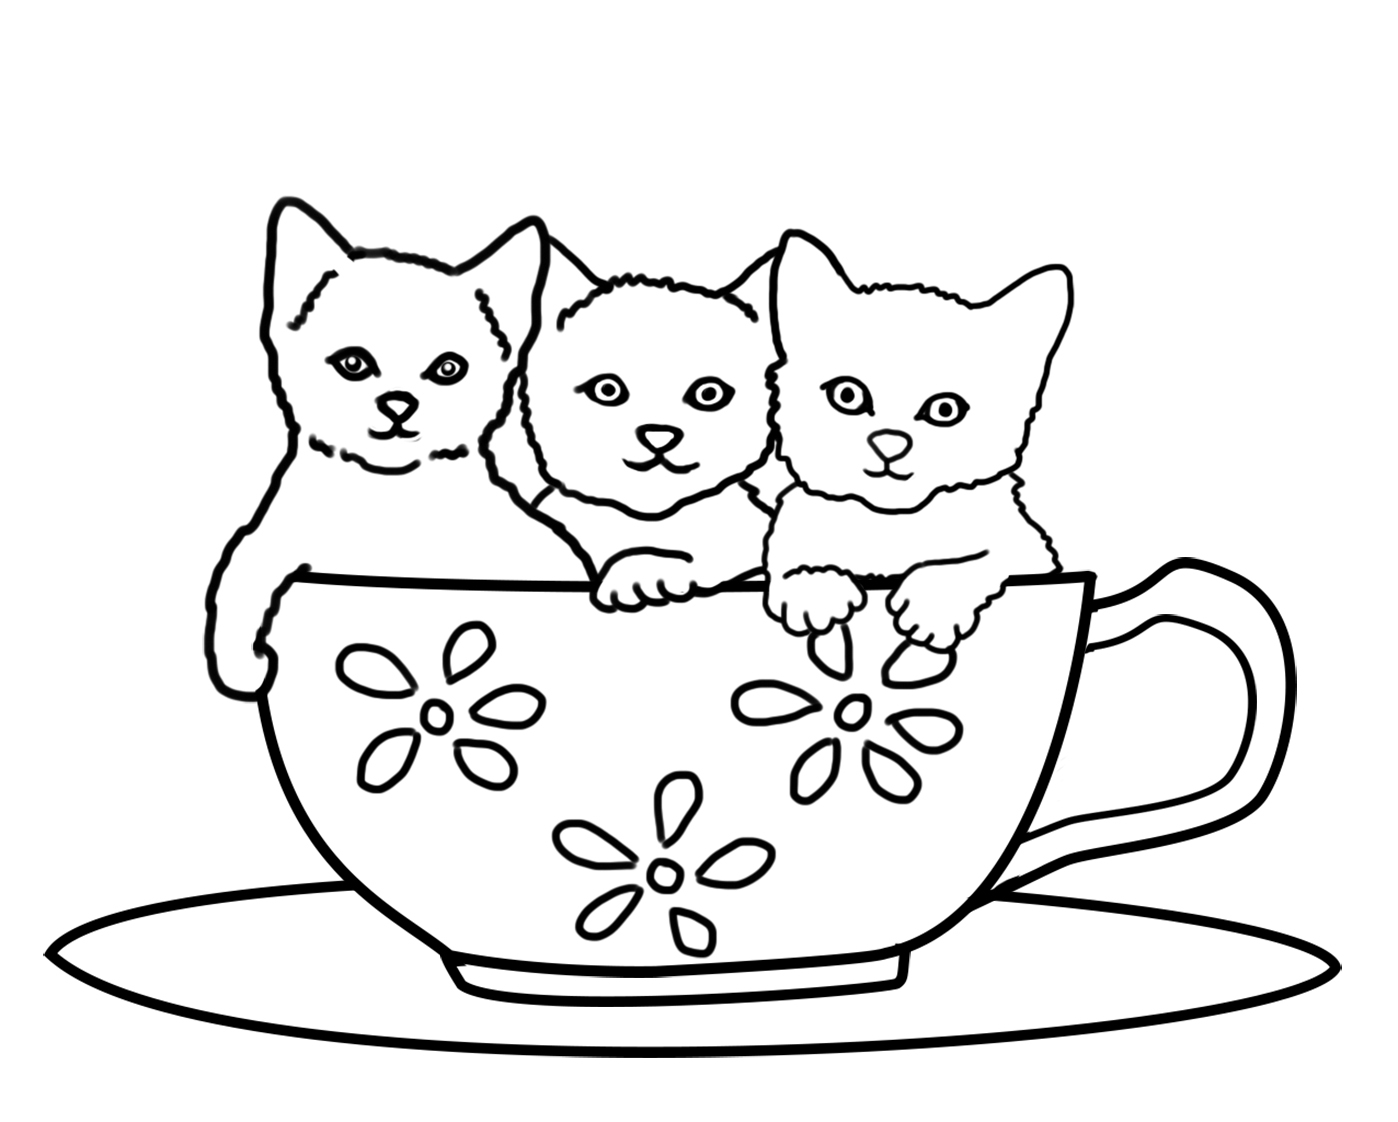 three kittens in a cup